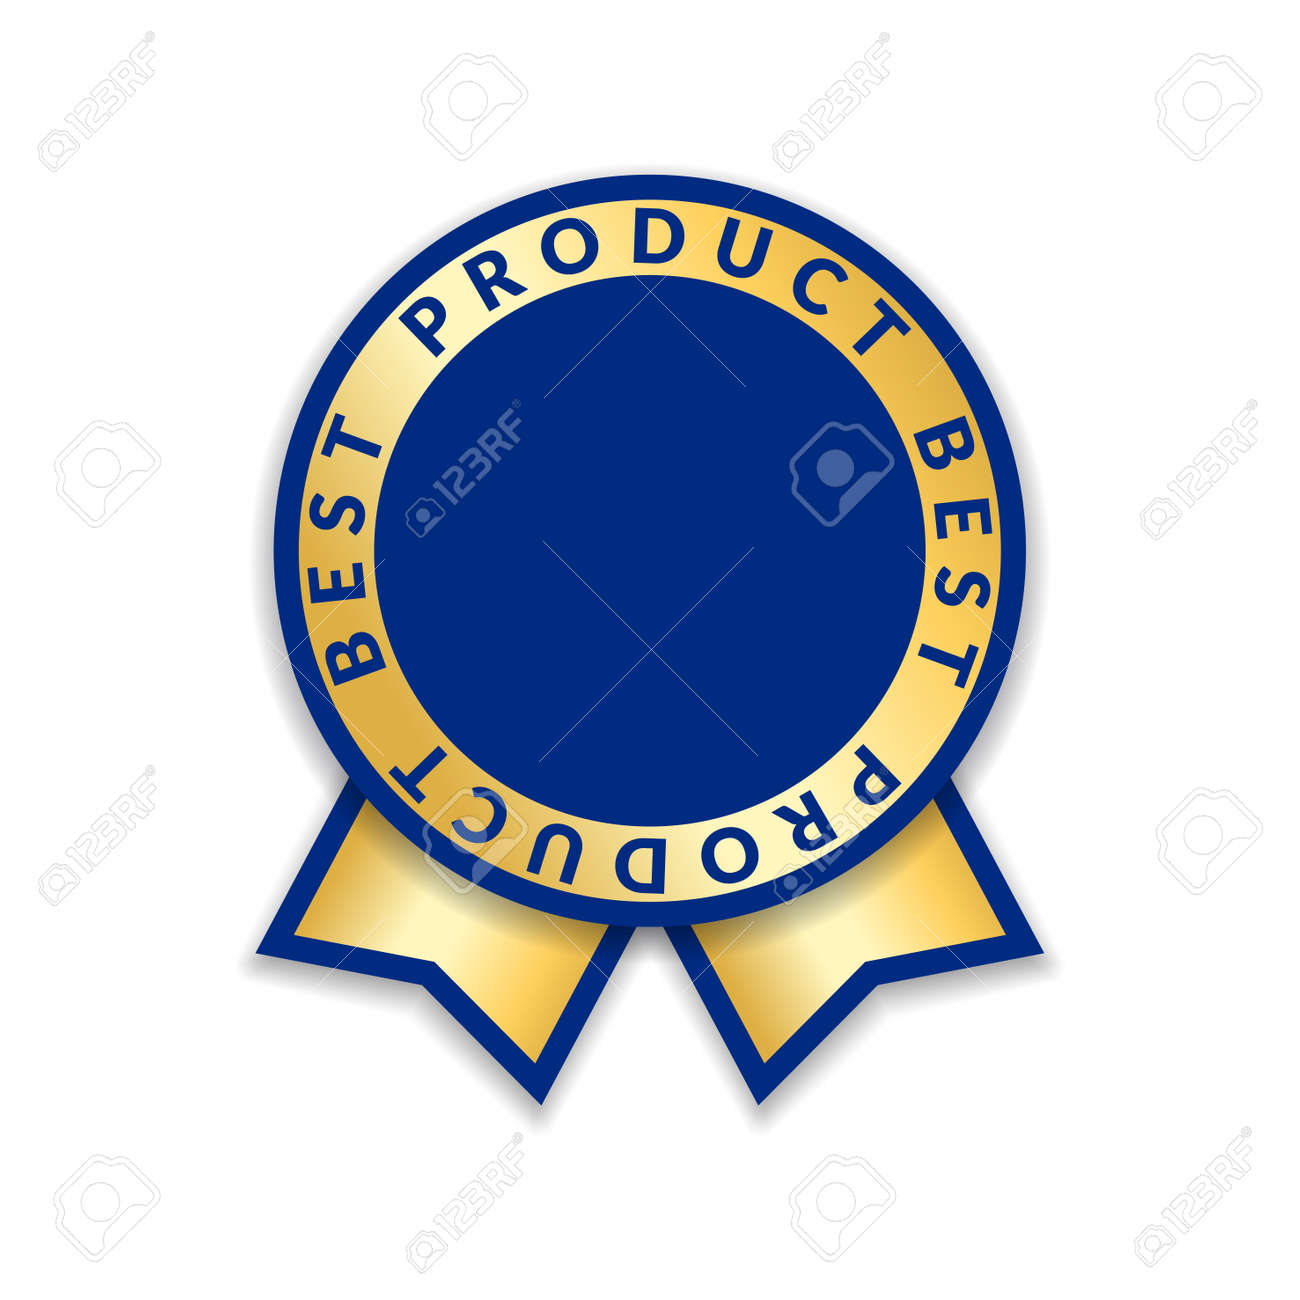 Ribbon award best product of year. Gold ribbon award icon isolated white background. Best product golden label for prize, badge, medal, guarantee quality product Vector illustration - 125259571